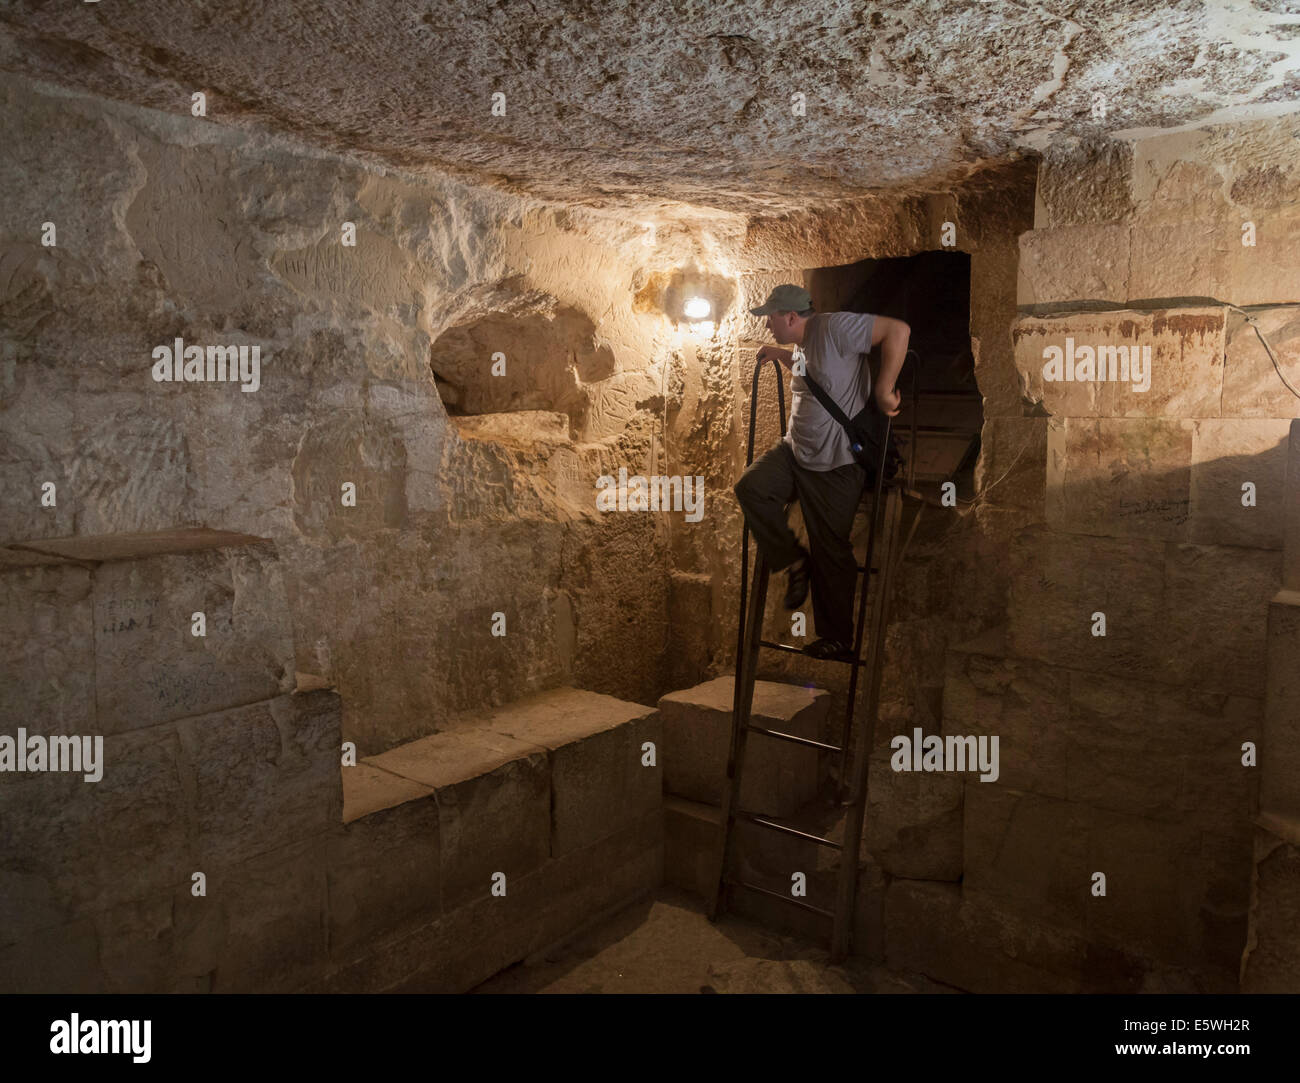 Tourist inside one of Pyramids of Giza in Cairo, Egypt - Stock Image